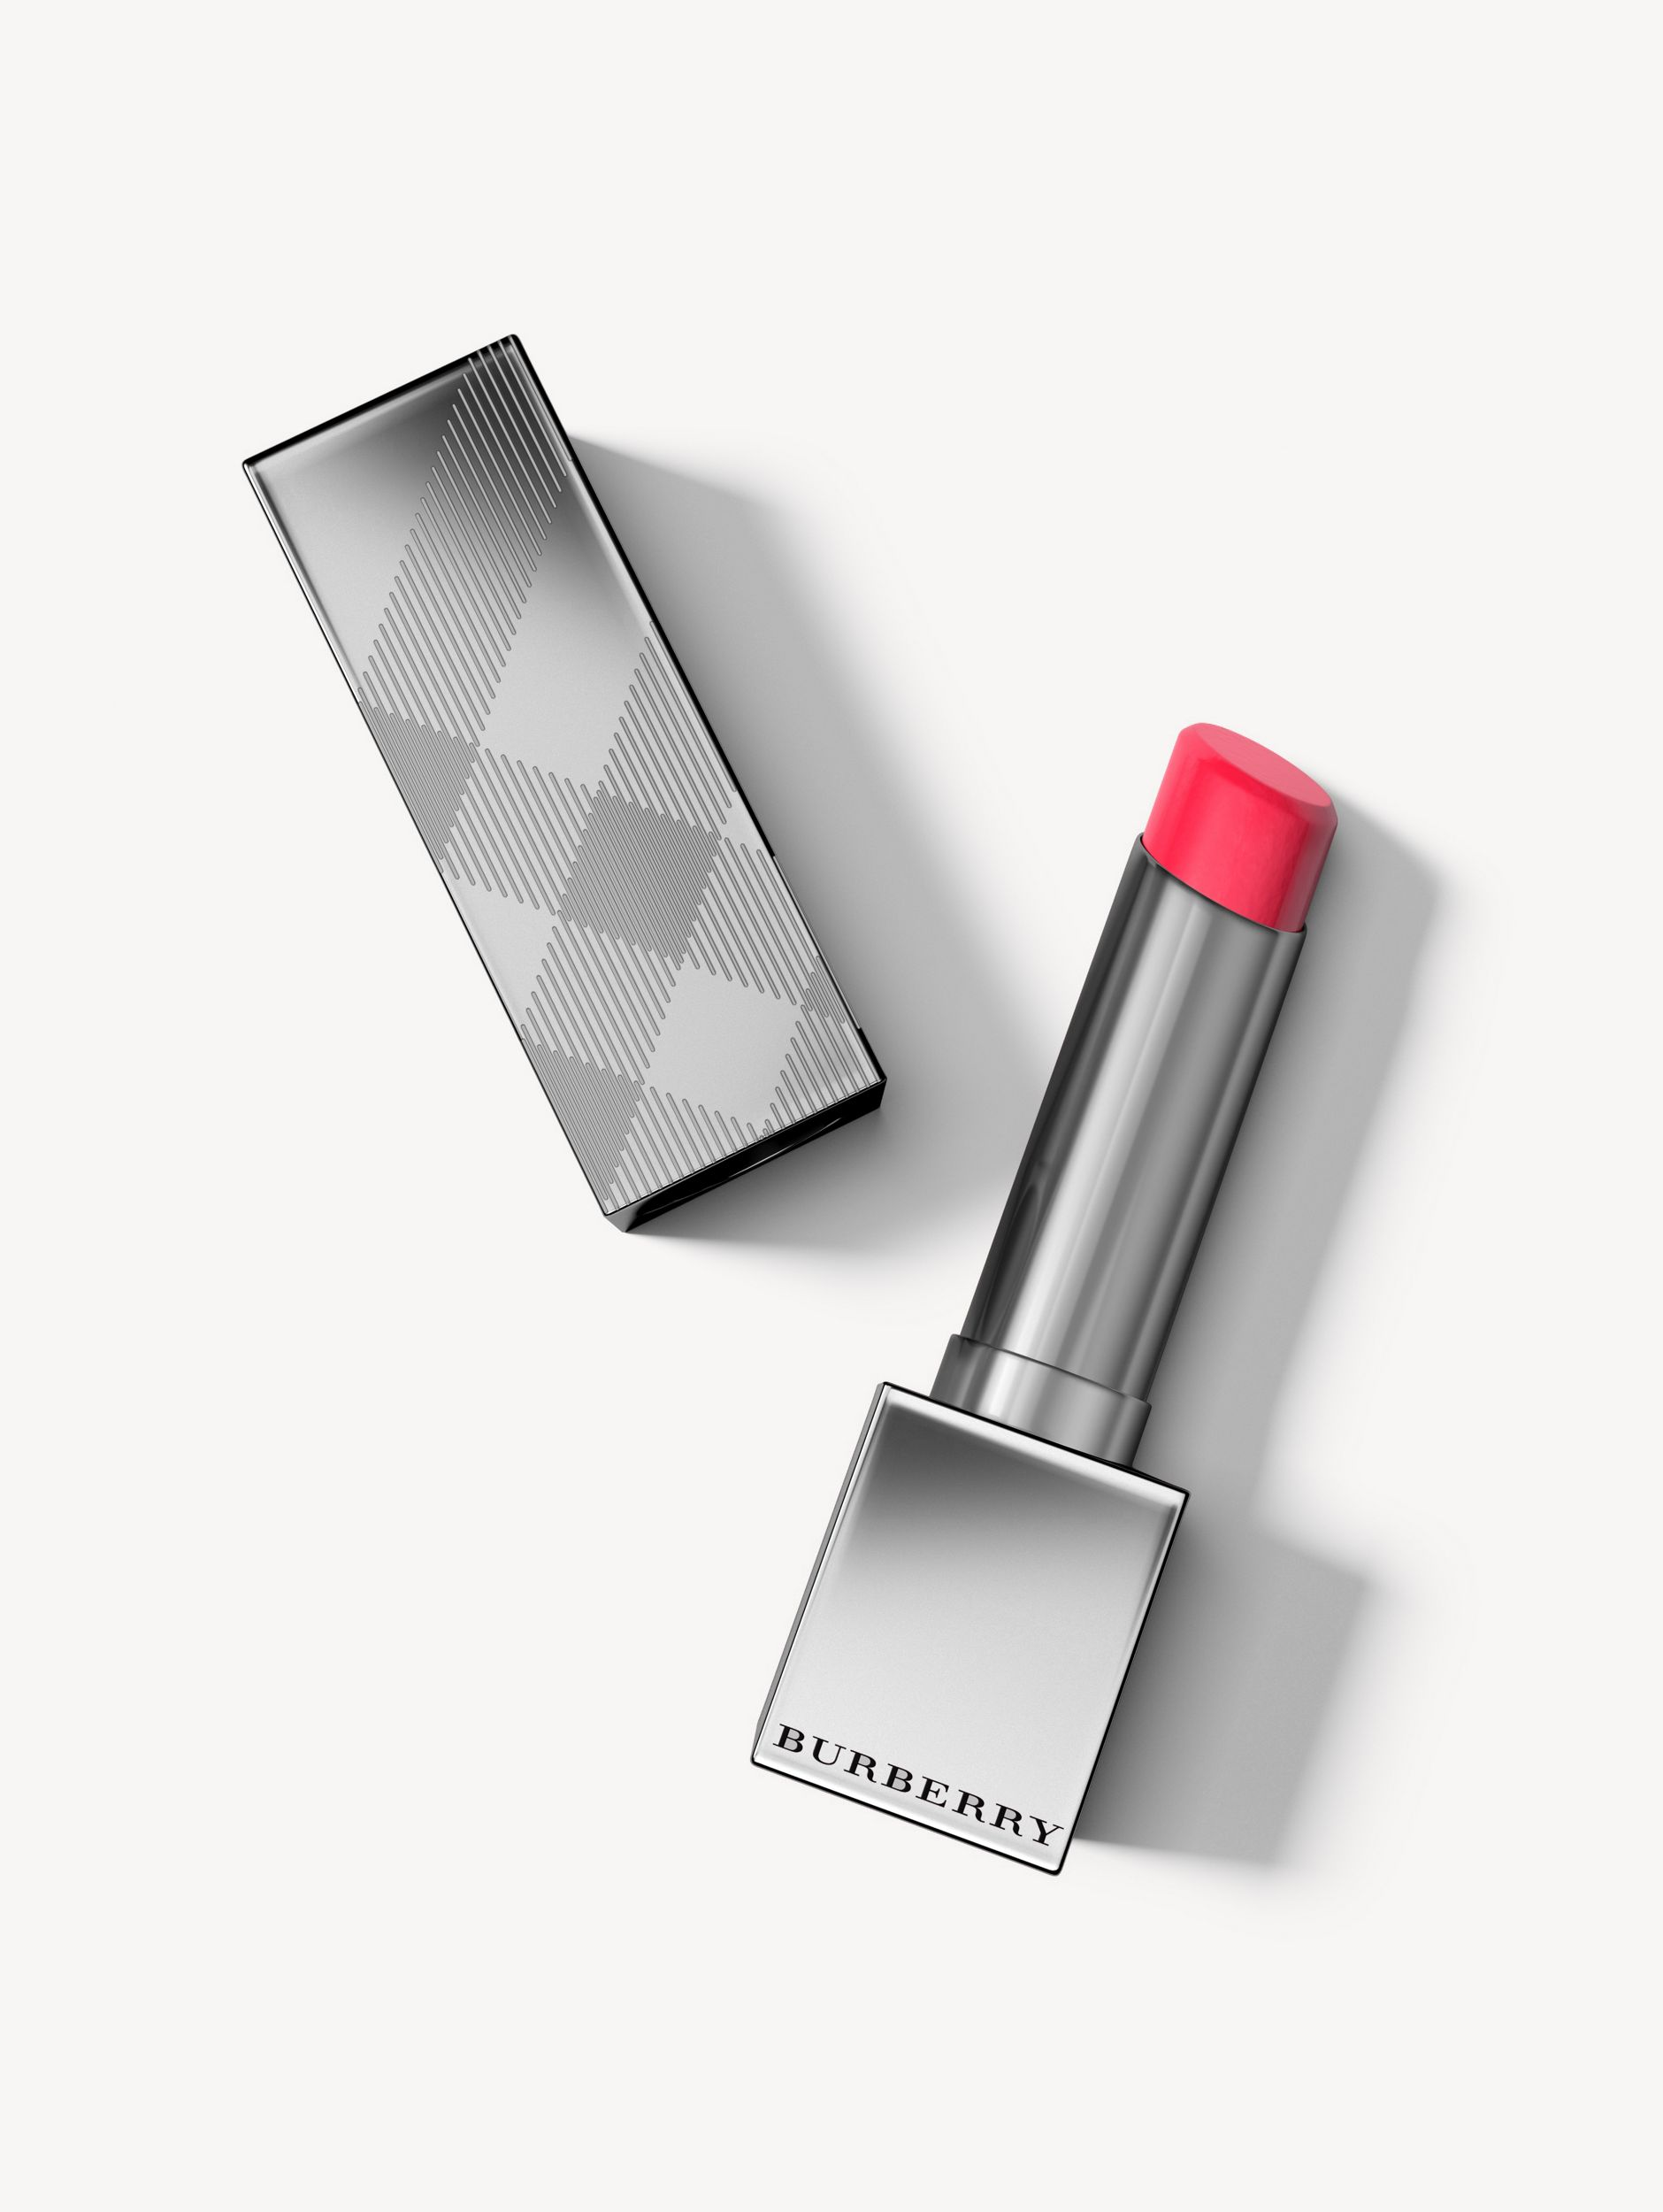 Burberry Kisses Sheer – Crimson Pink No.241 - Women | Burberry - 1